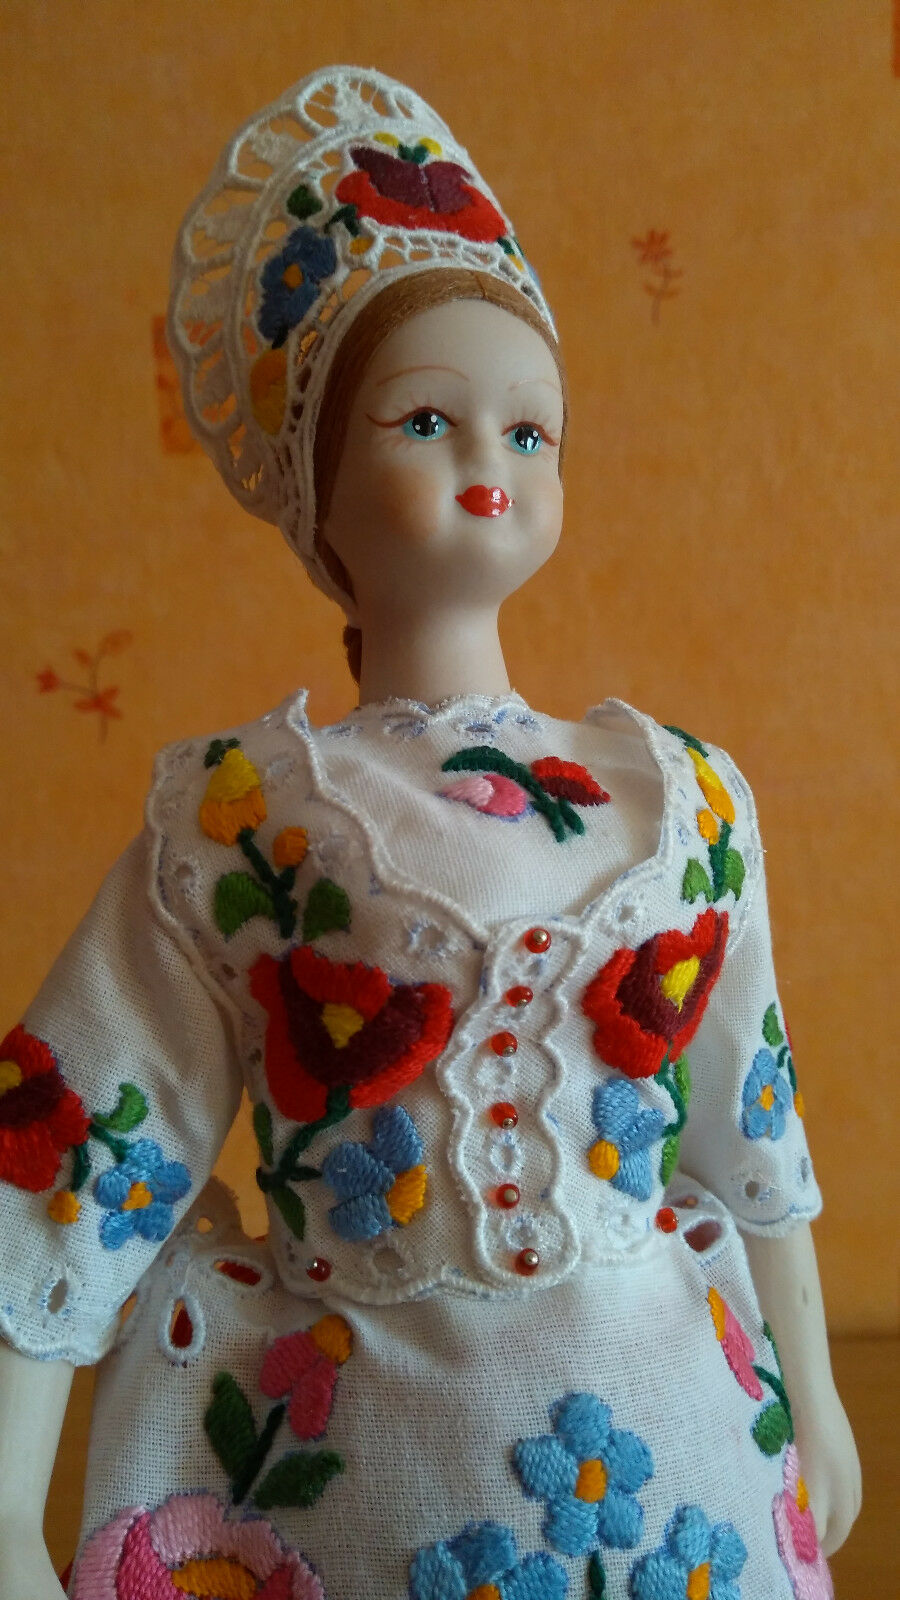 Hungarian Porcelain Doll Kalocsa embroiderot Kleid With stand 13  33cm Handmade